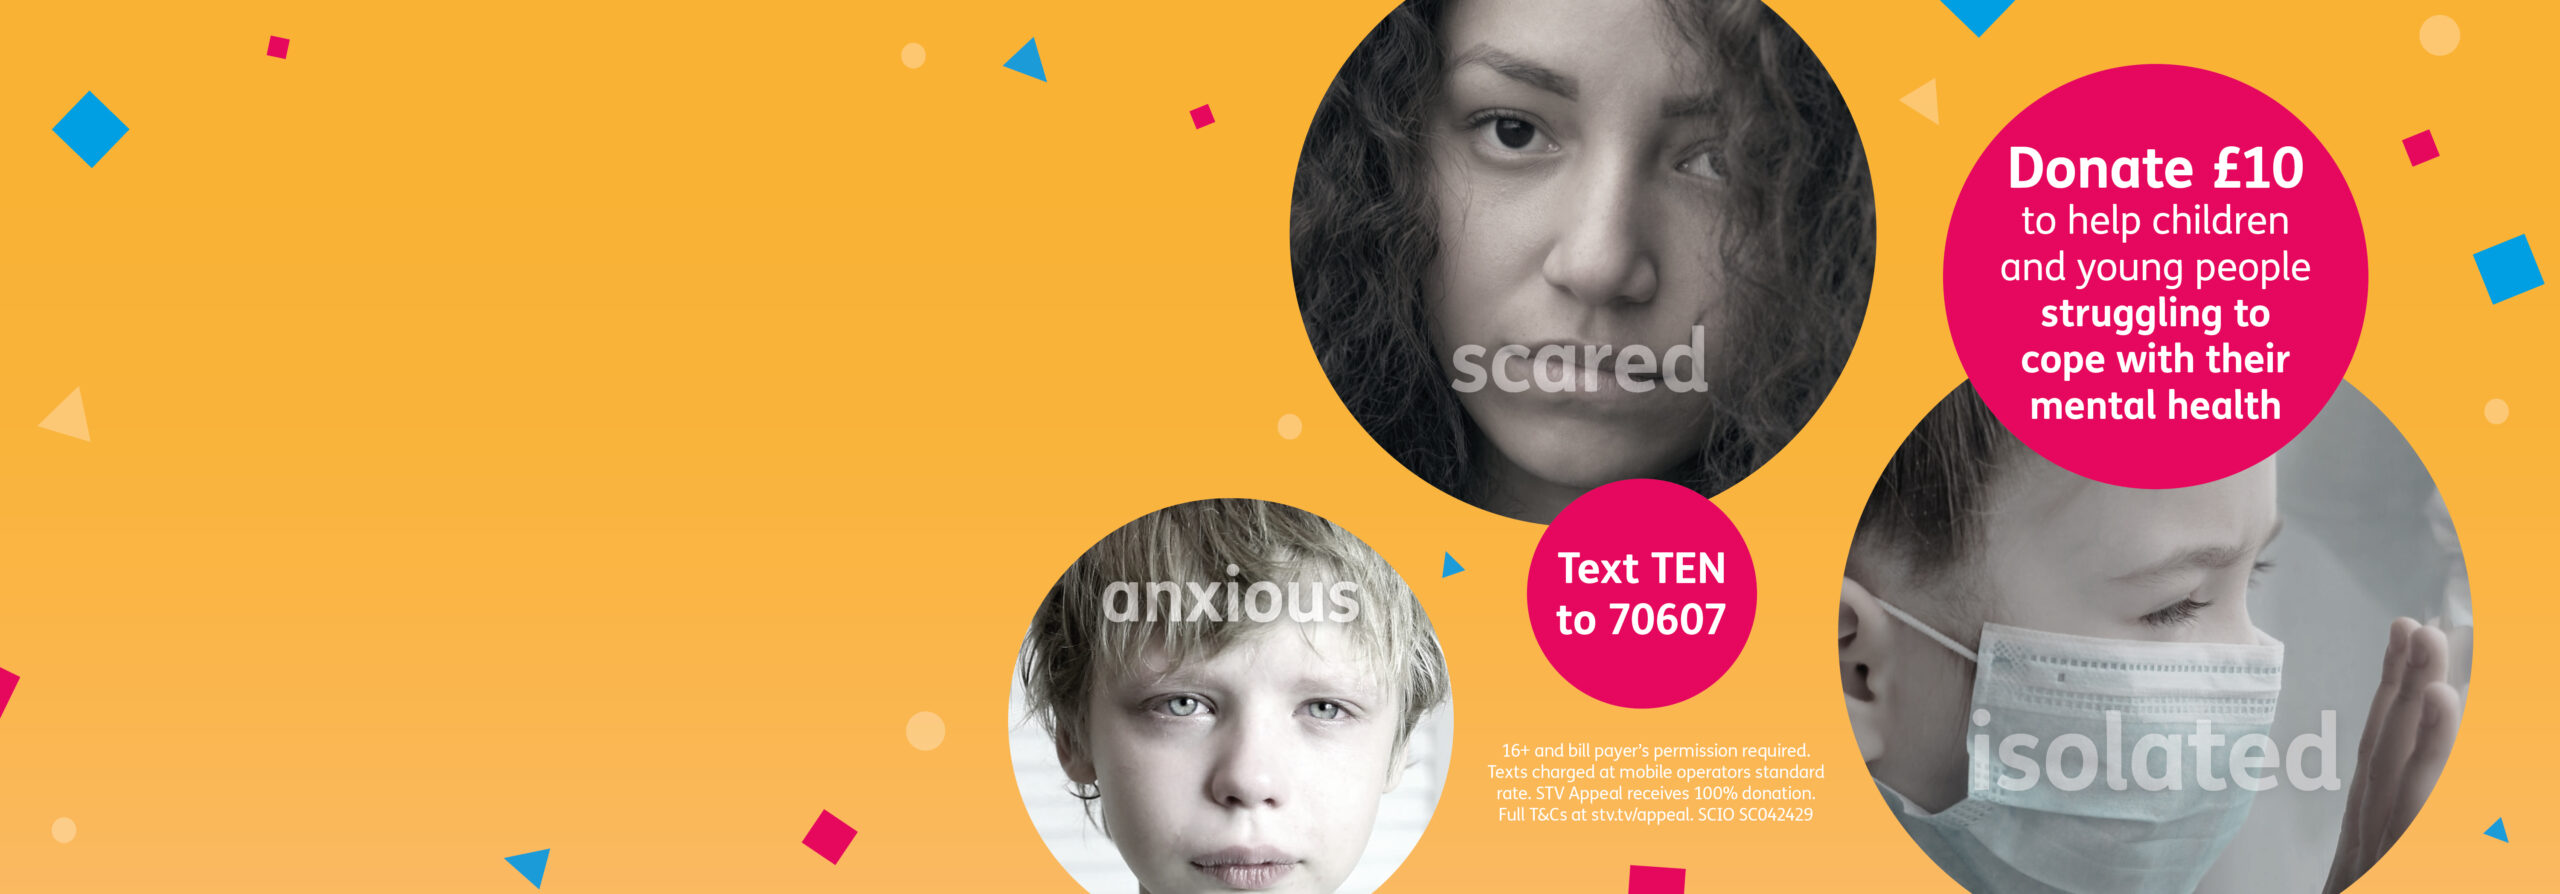 Donate £10 to help children cope with their mental health